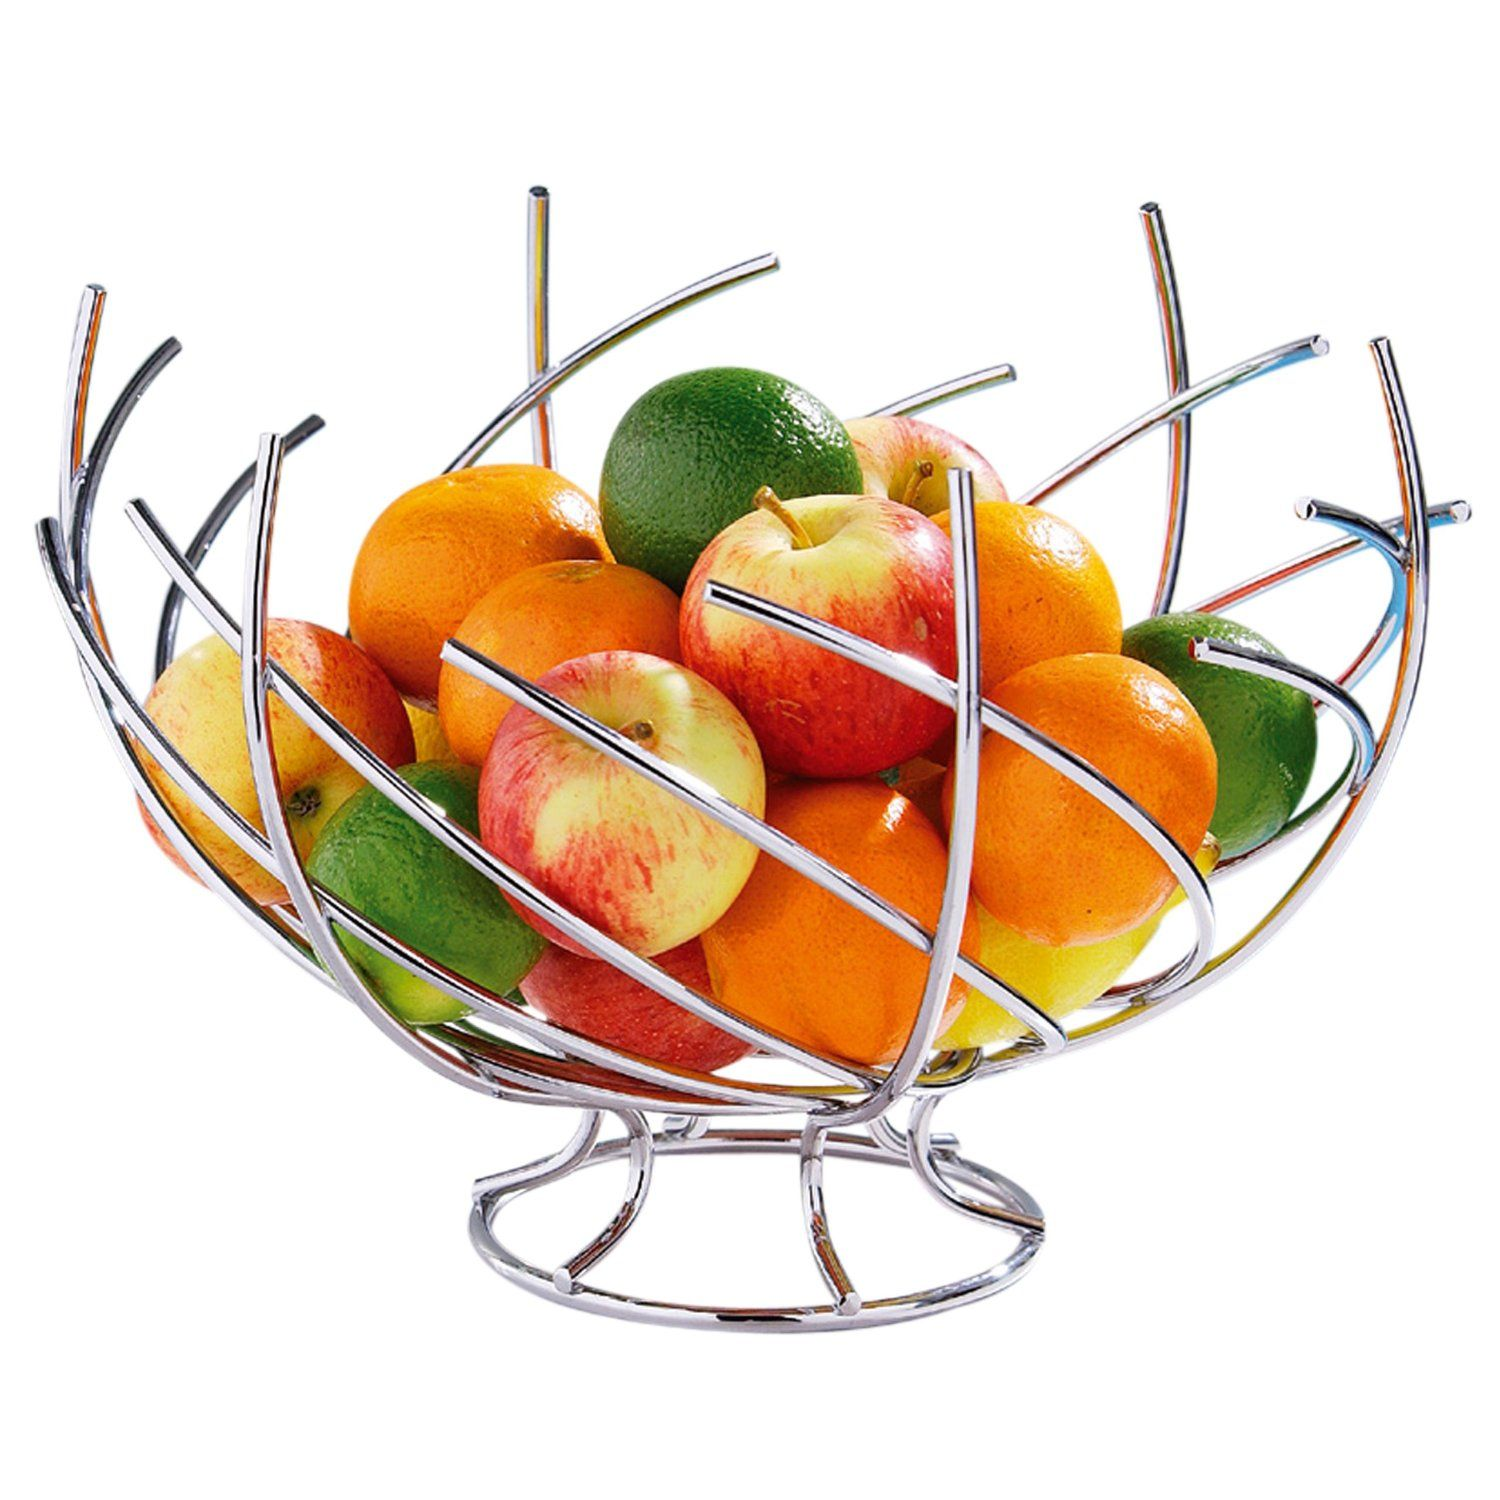 Designer Fruit Basket 16 Beautiful Fruit Bowl Designs Home Decoration And